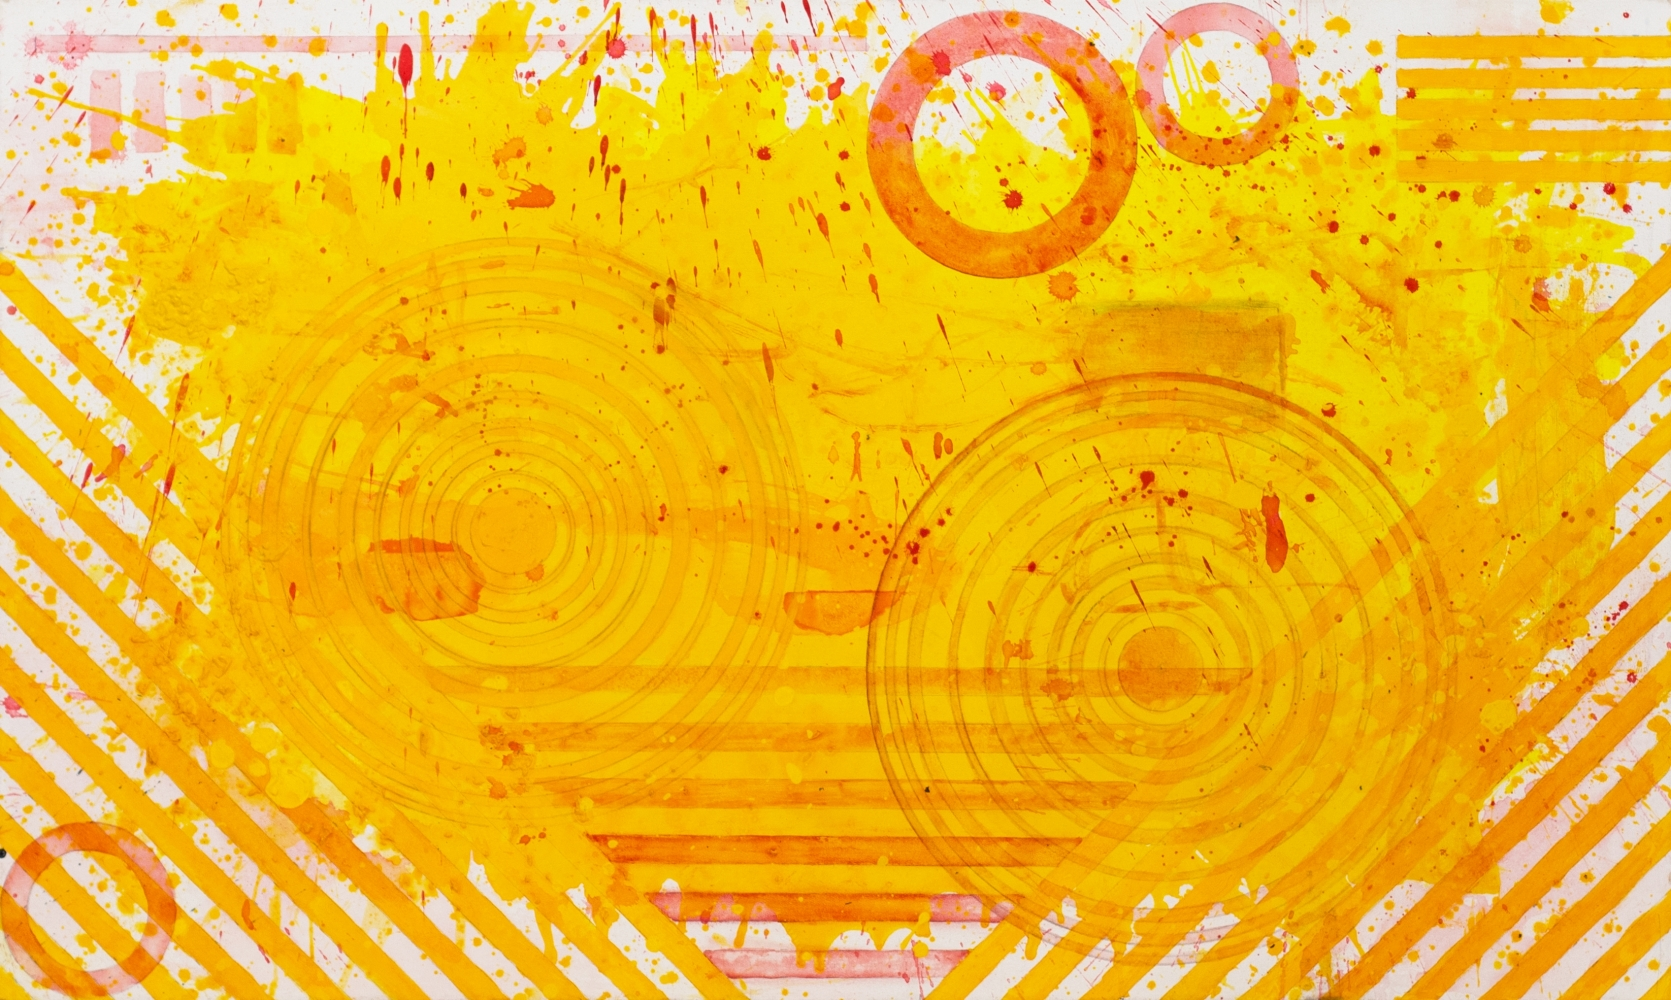 J.Steven Manolis, Sunshine (36.60.05), #5 sunshine series, 2020, acrylic and Latex Enamel on canvas, 36 x 60 inches, Sunshine art, Large Abstract Wall Art for Sale at Manolis Projects Art Gallery, Miami Fl